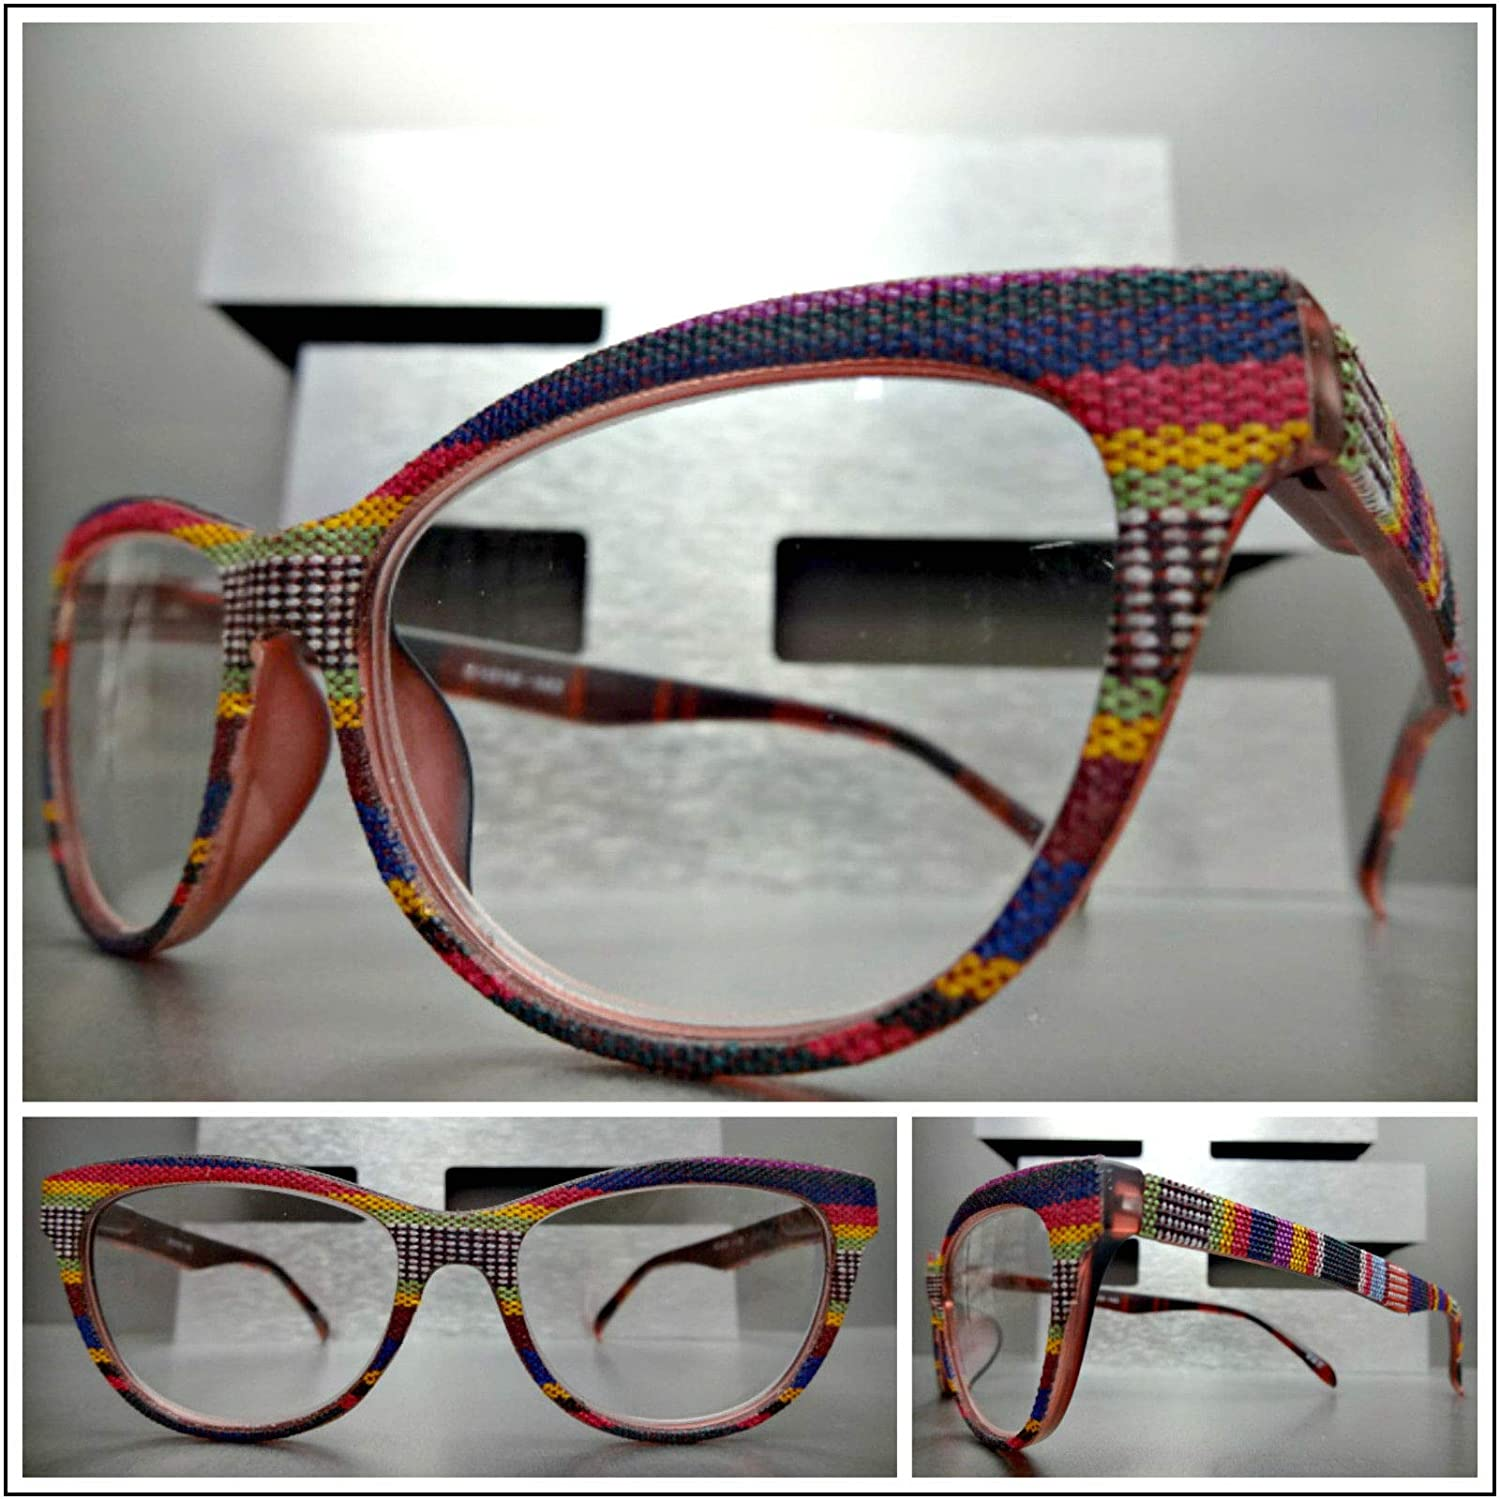 568725383a Amazon.com  Women Retro Cat Eye Style Reading Eye Glasses Readers Aztec  Tribal Design Frame (+2.50 Strength)  Health   Personal Care